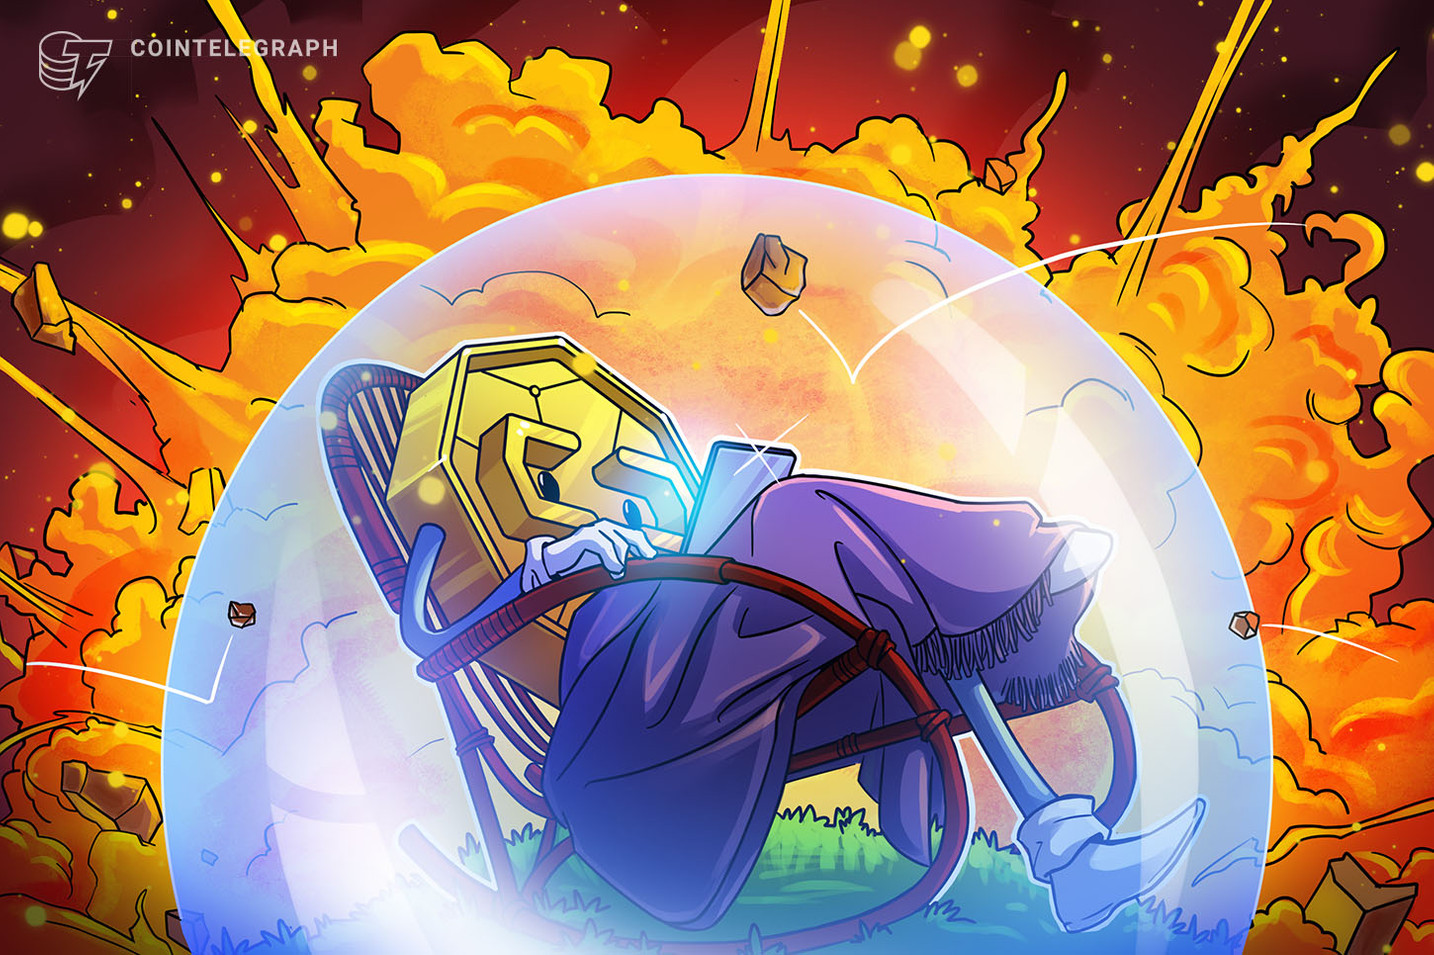 Crypto Insurance Market to Grow, Lloyd's of London and Aon to Lead